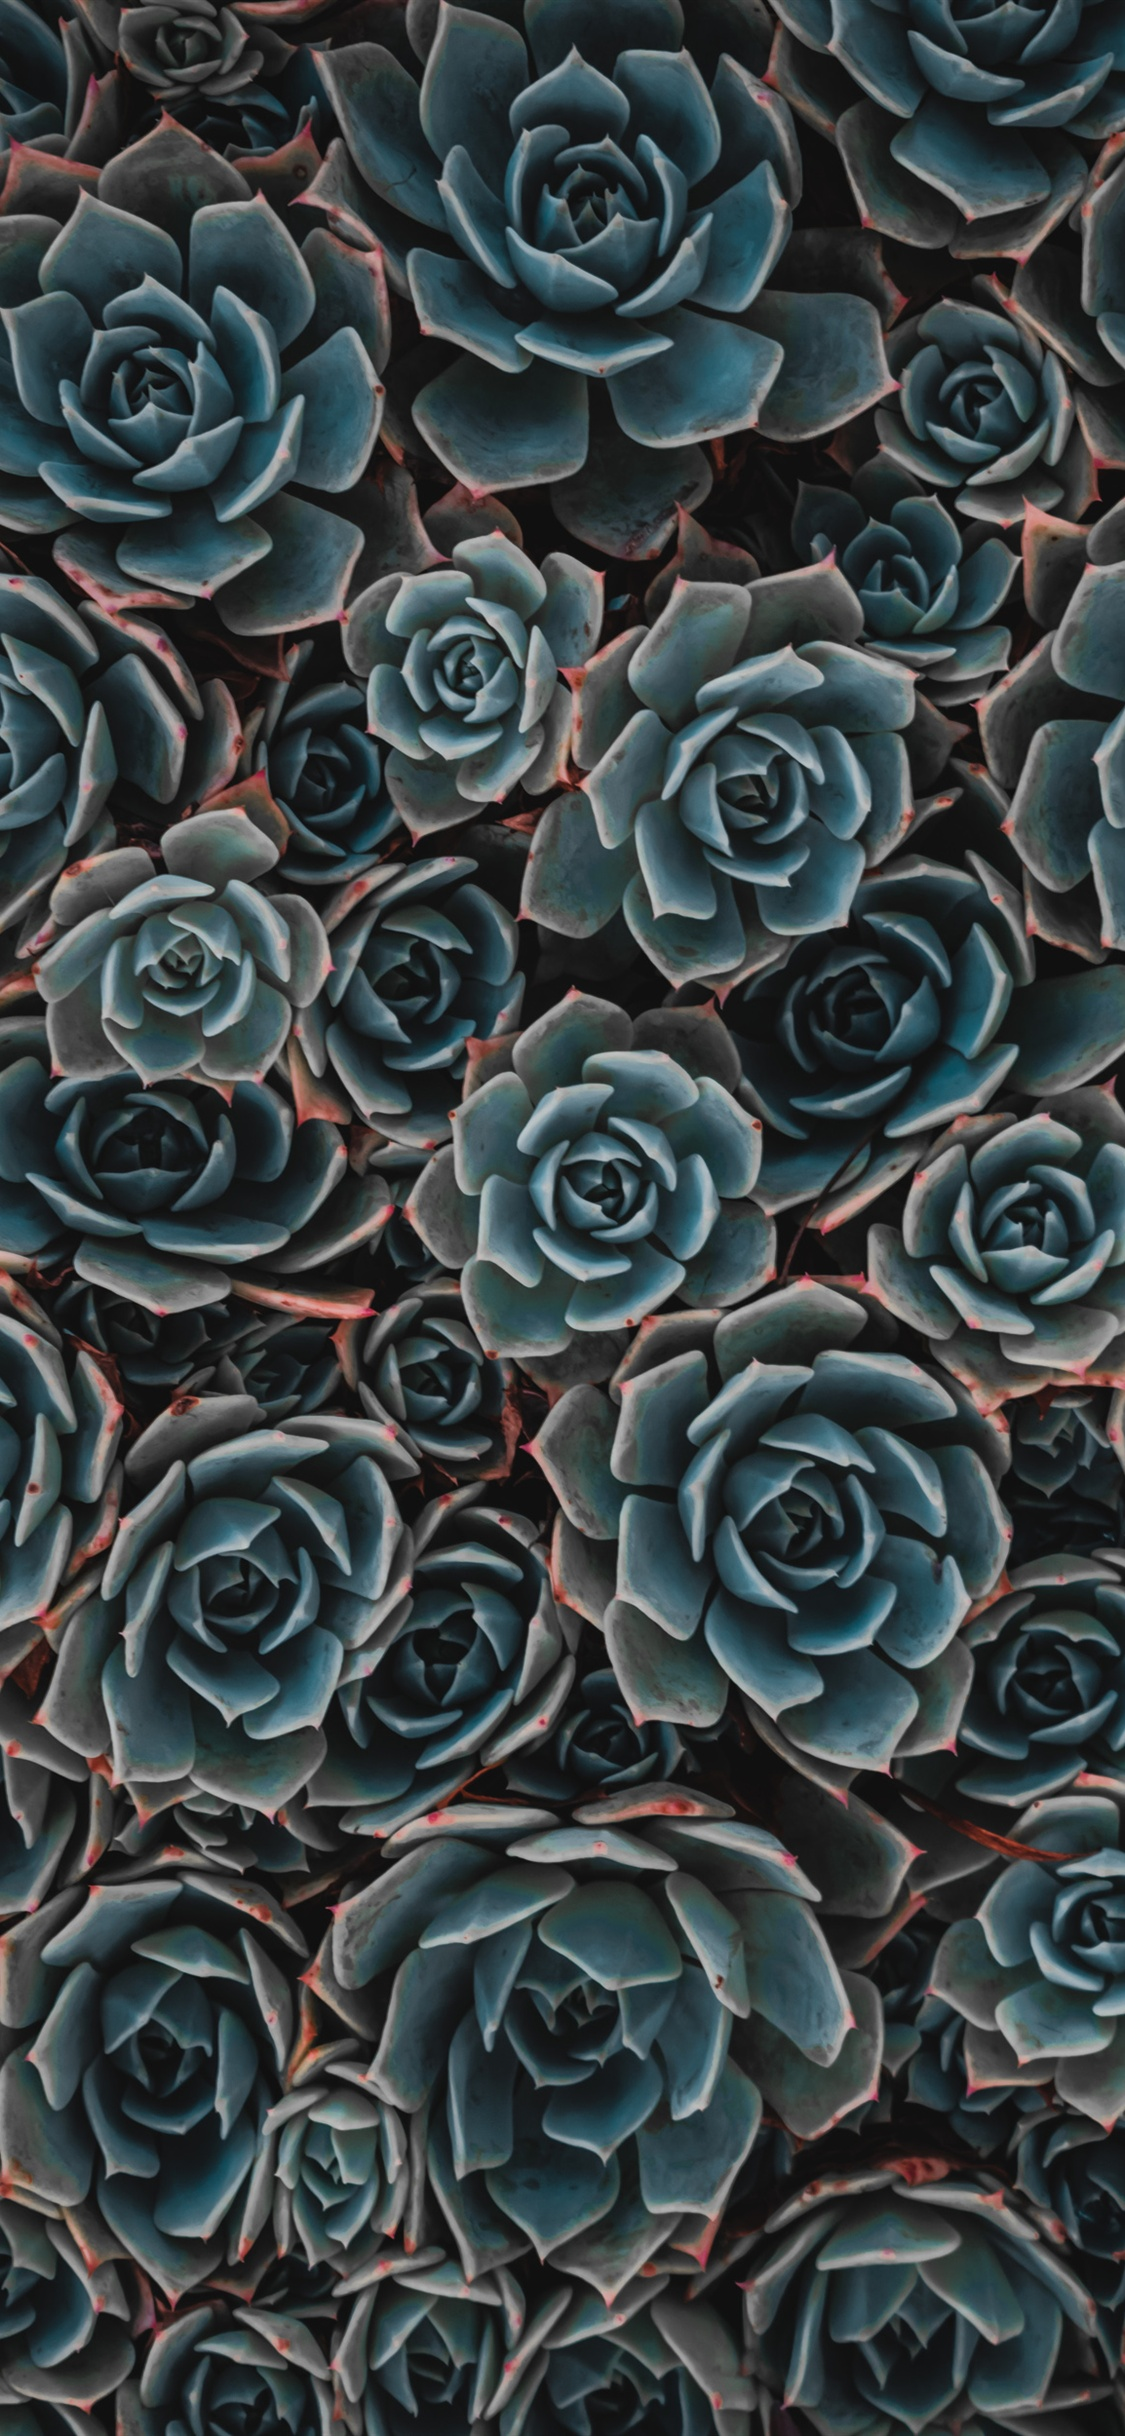 Succulent Wallpaper Iphone X 2623966 Hd Wallpaper Backgrounds Download